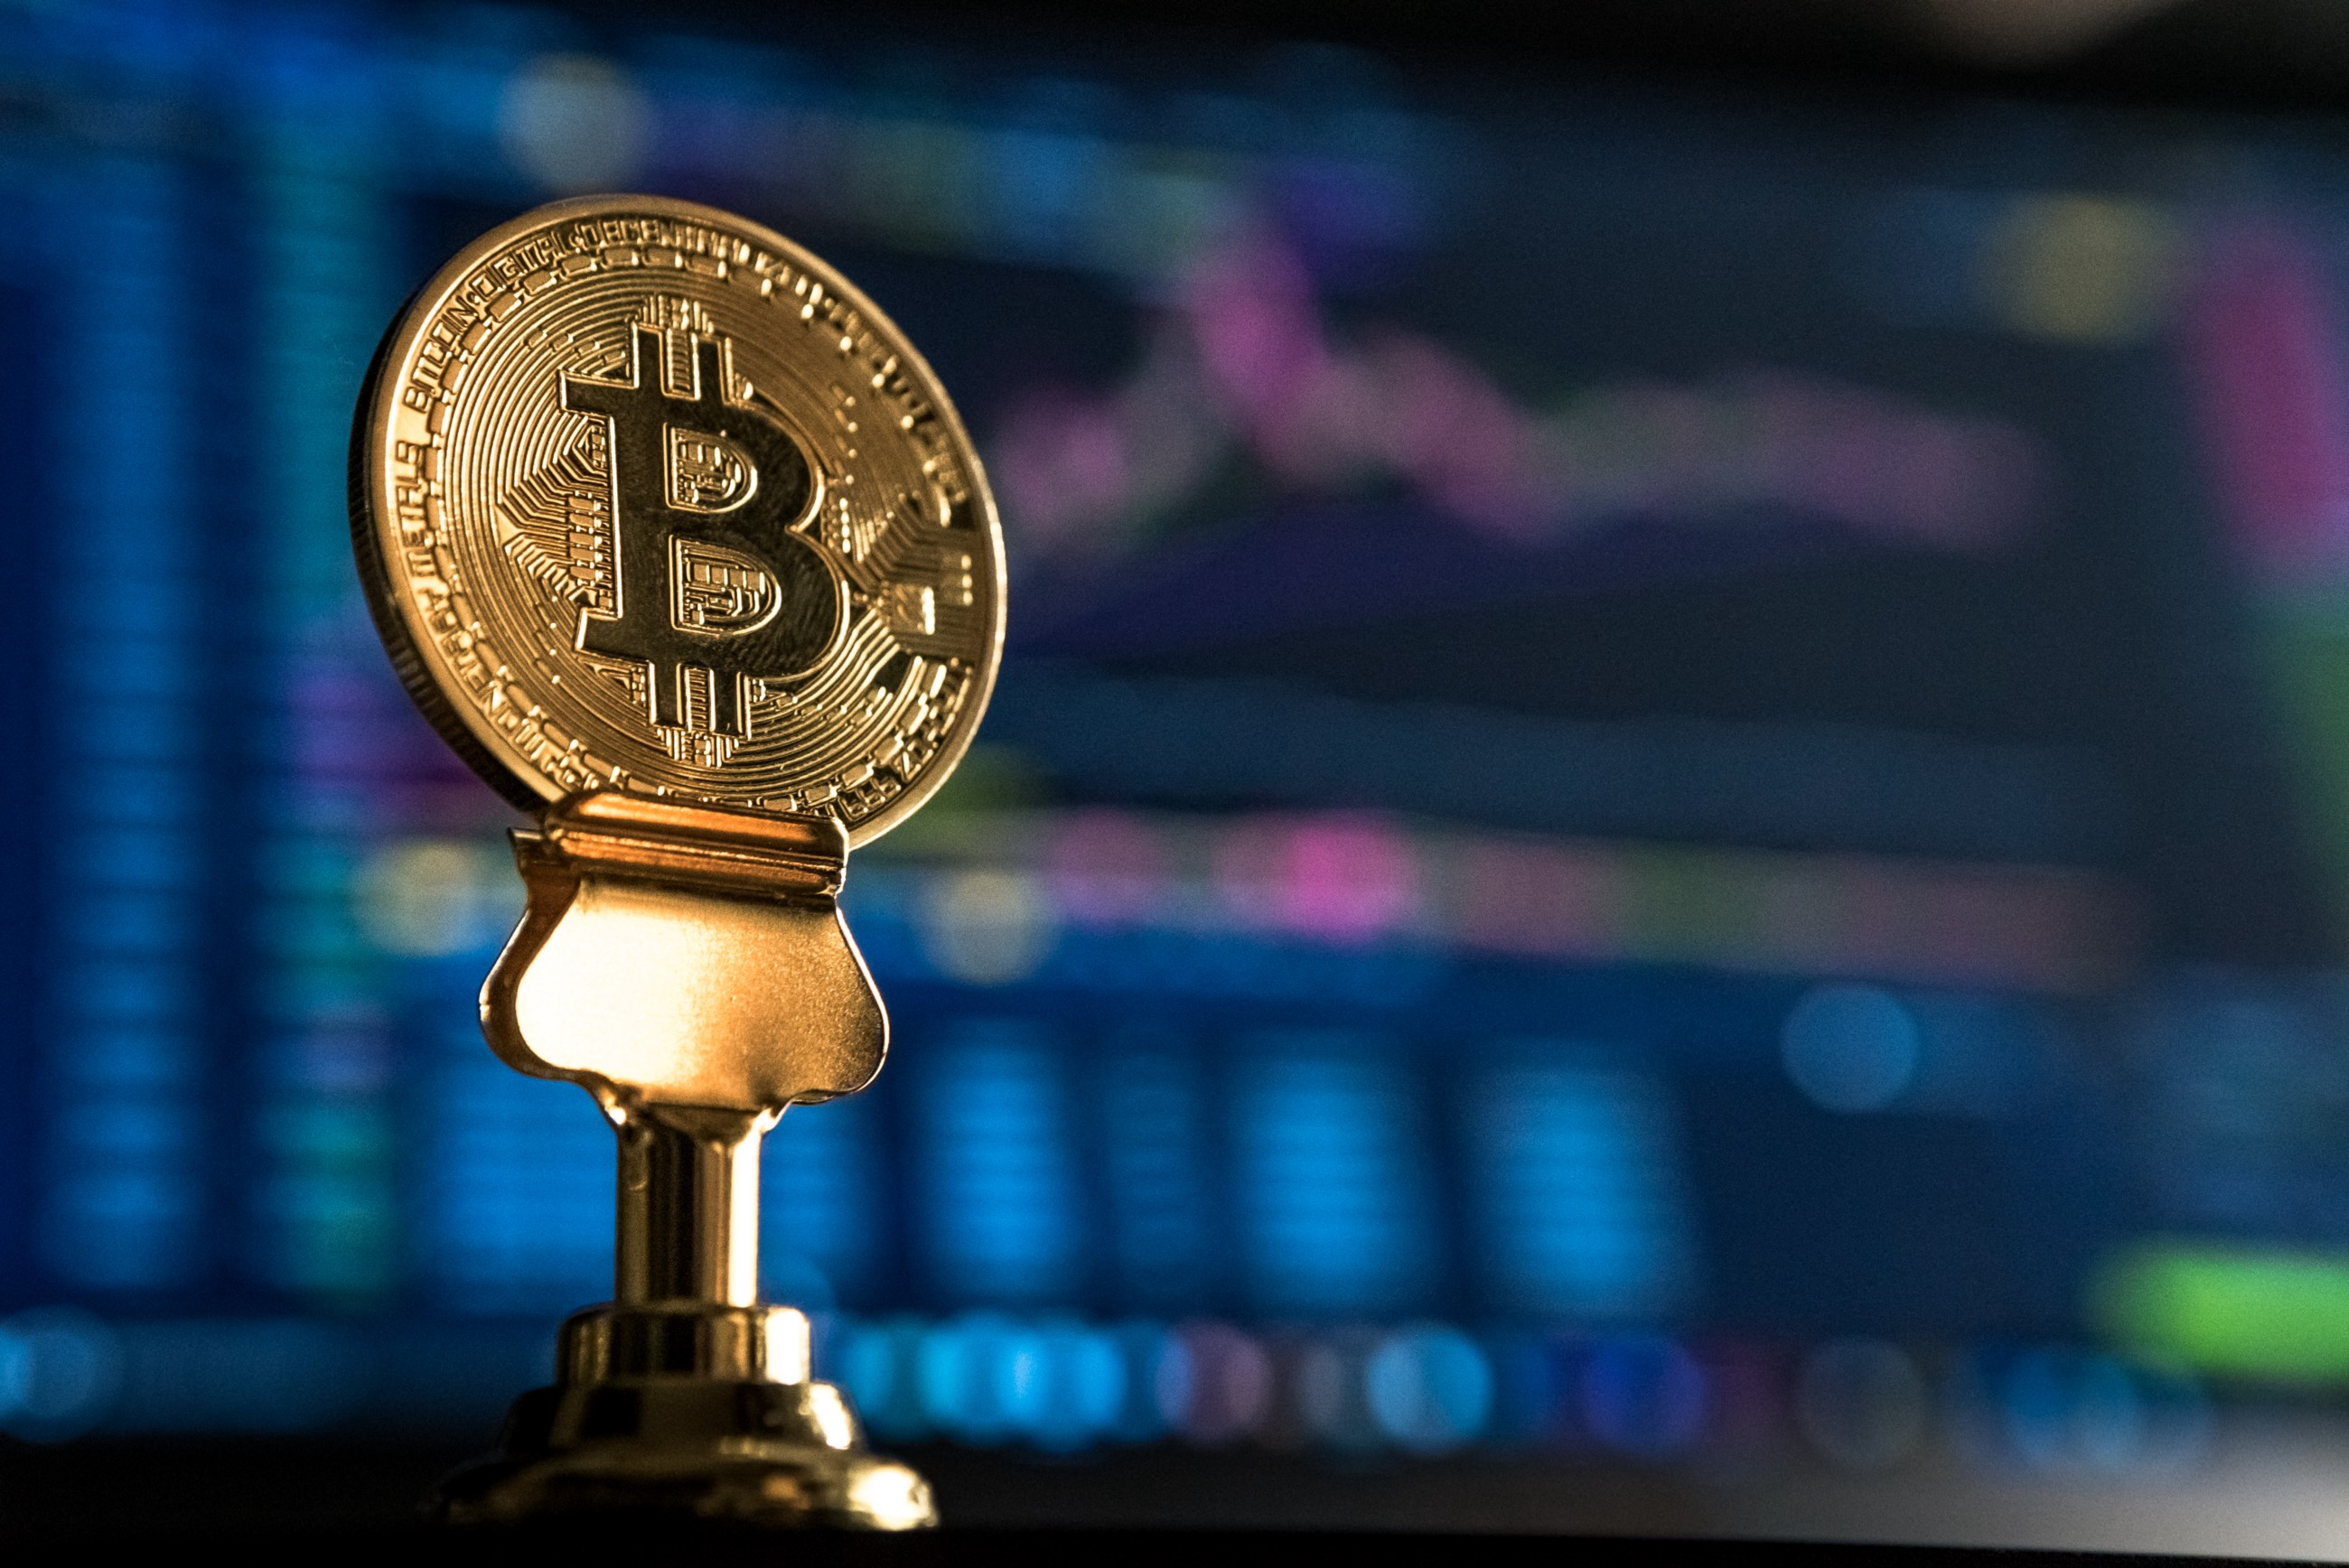 Backtesting a Bitcoin Trading Strategy